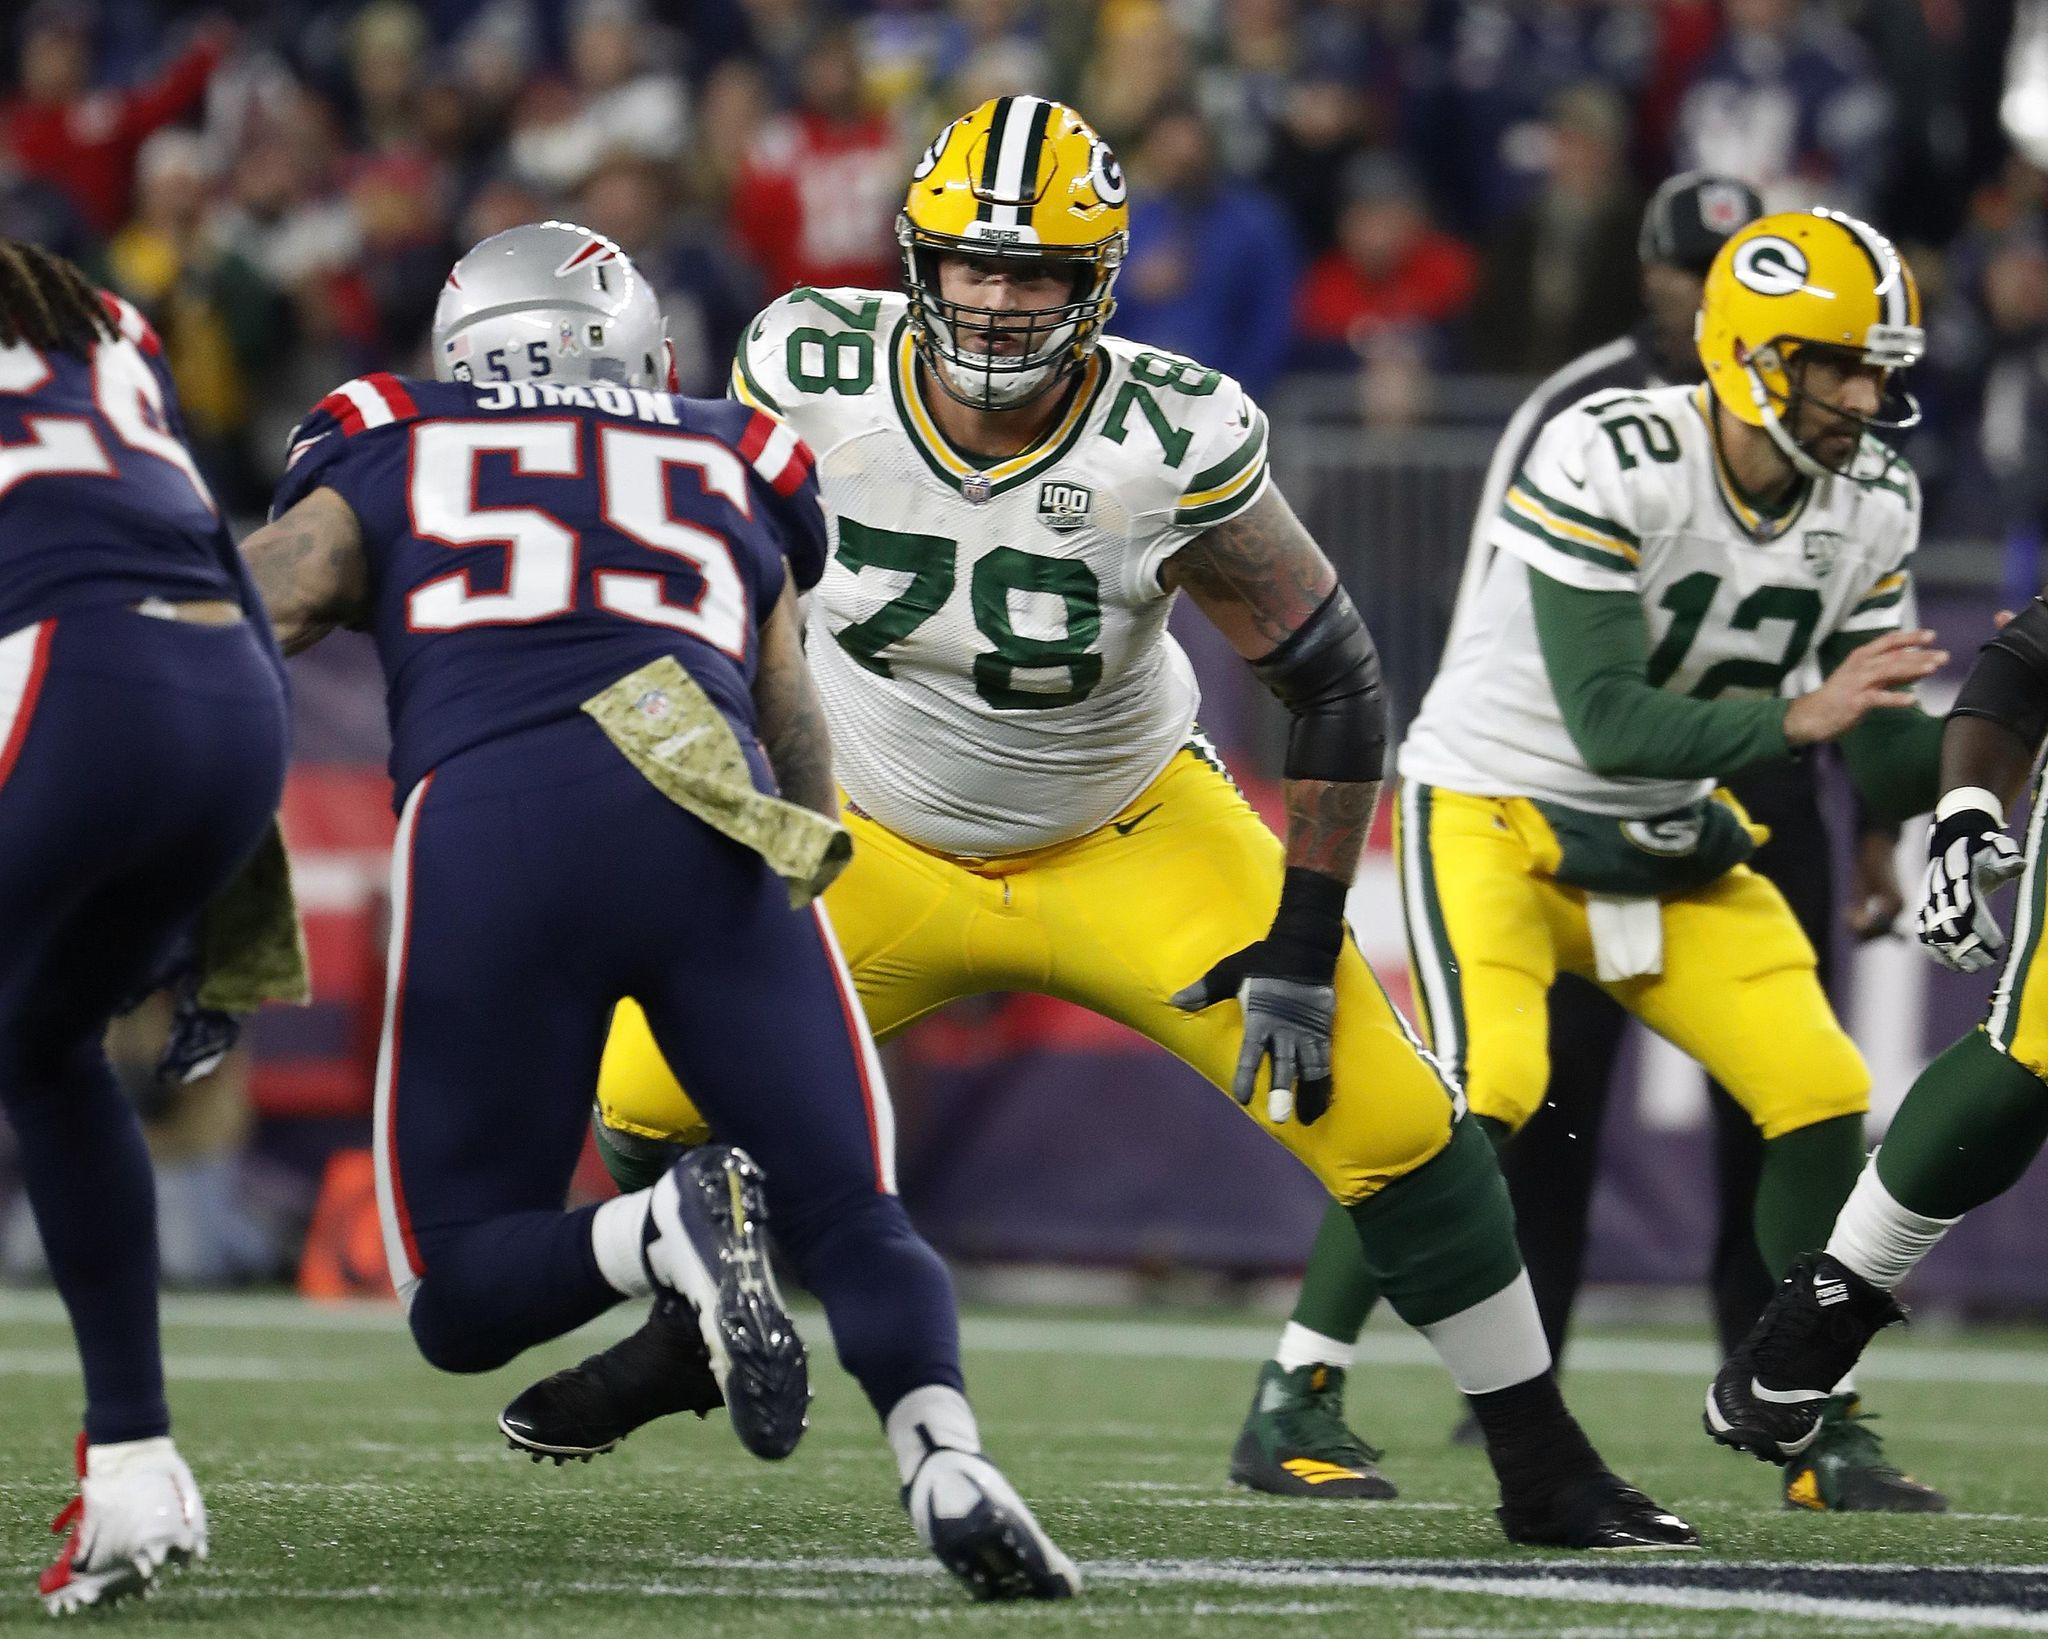 Packers-protecting_rodgers_football_63960_s2048x1639